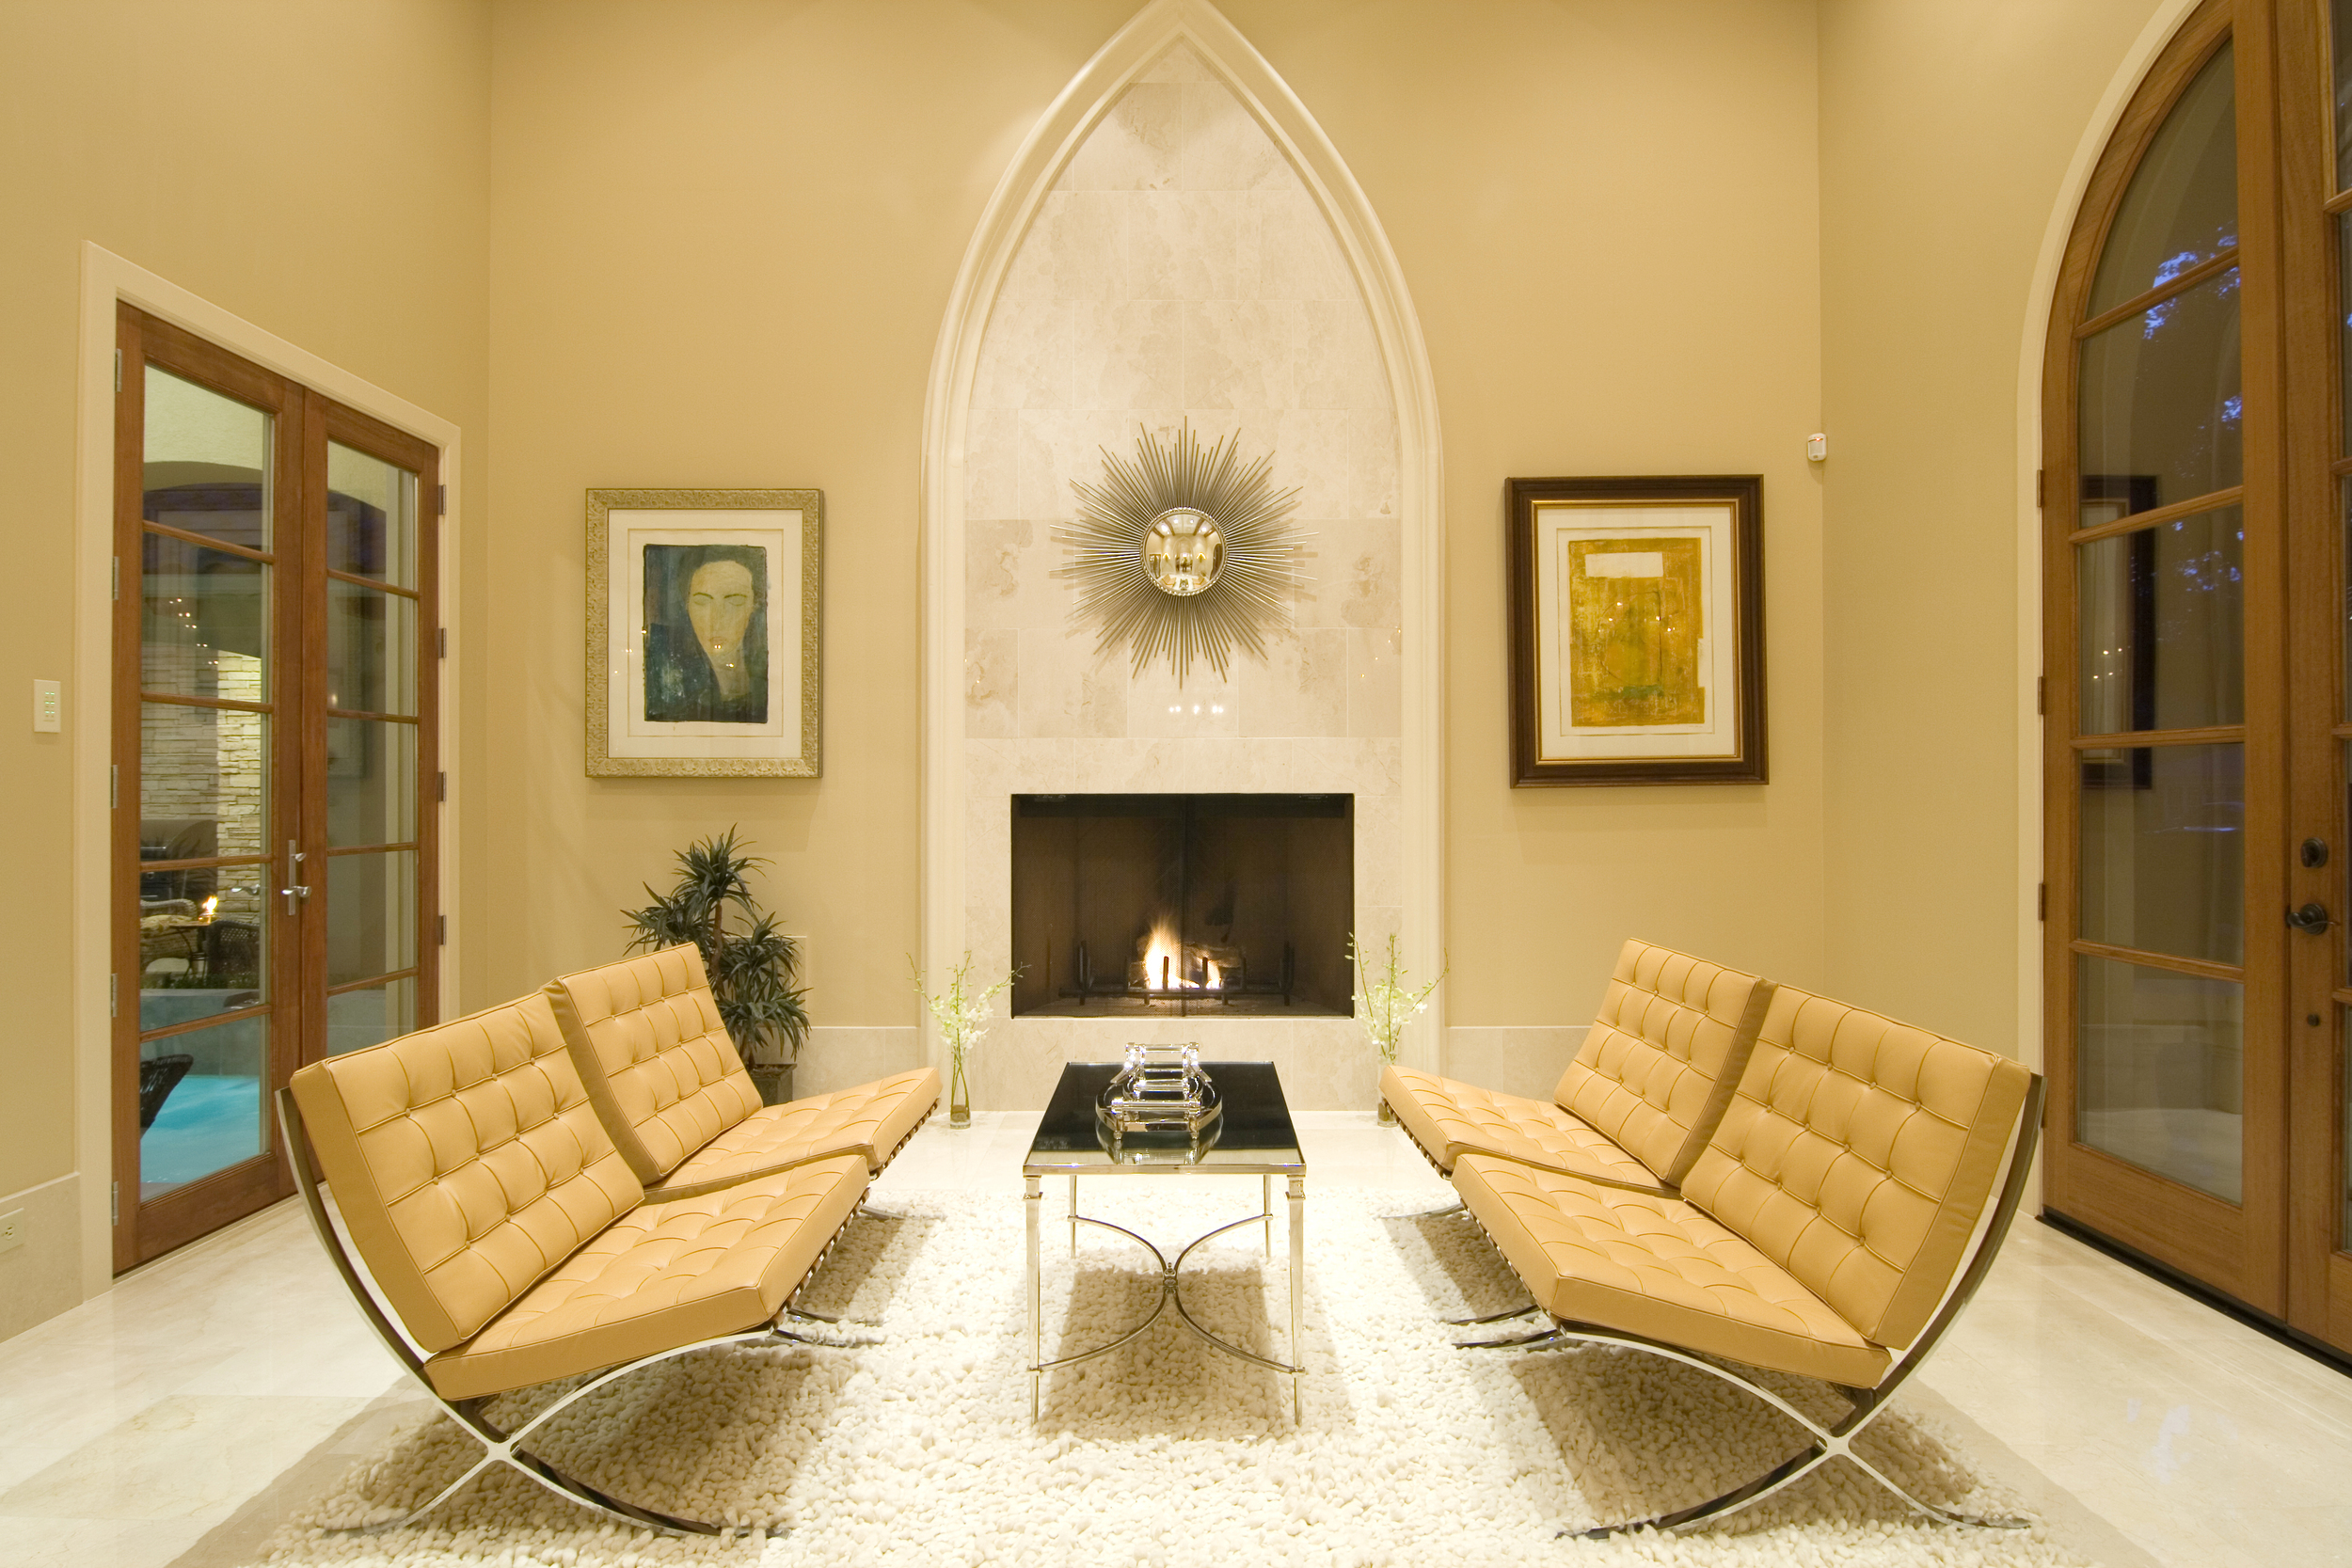 Meadow Lake Lane - Living Room - liv2.jpg